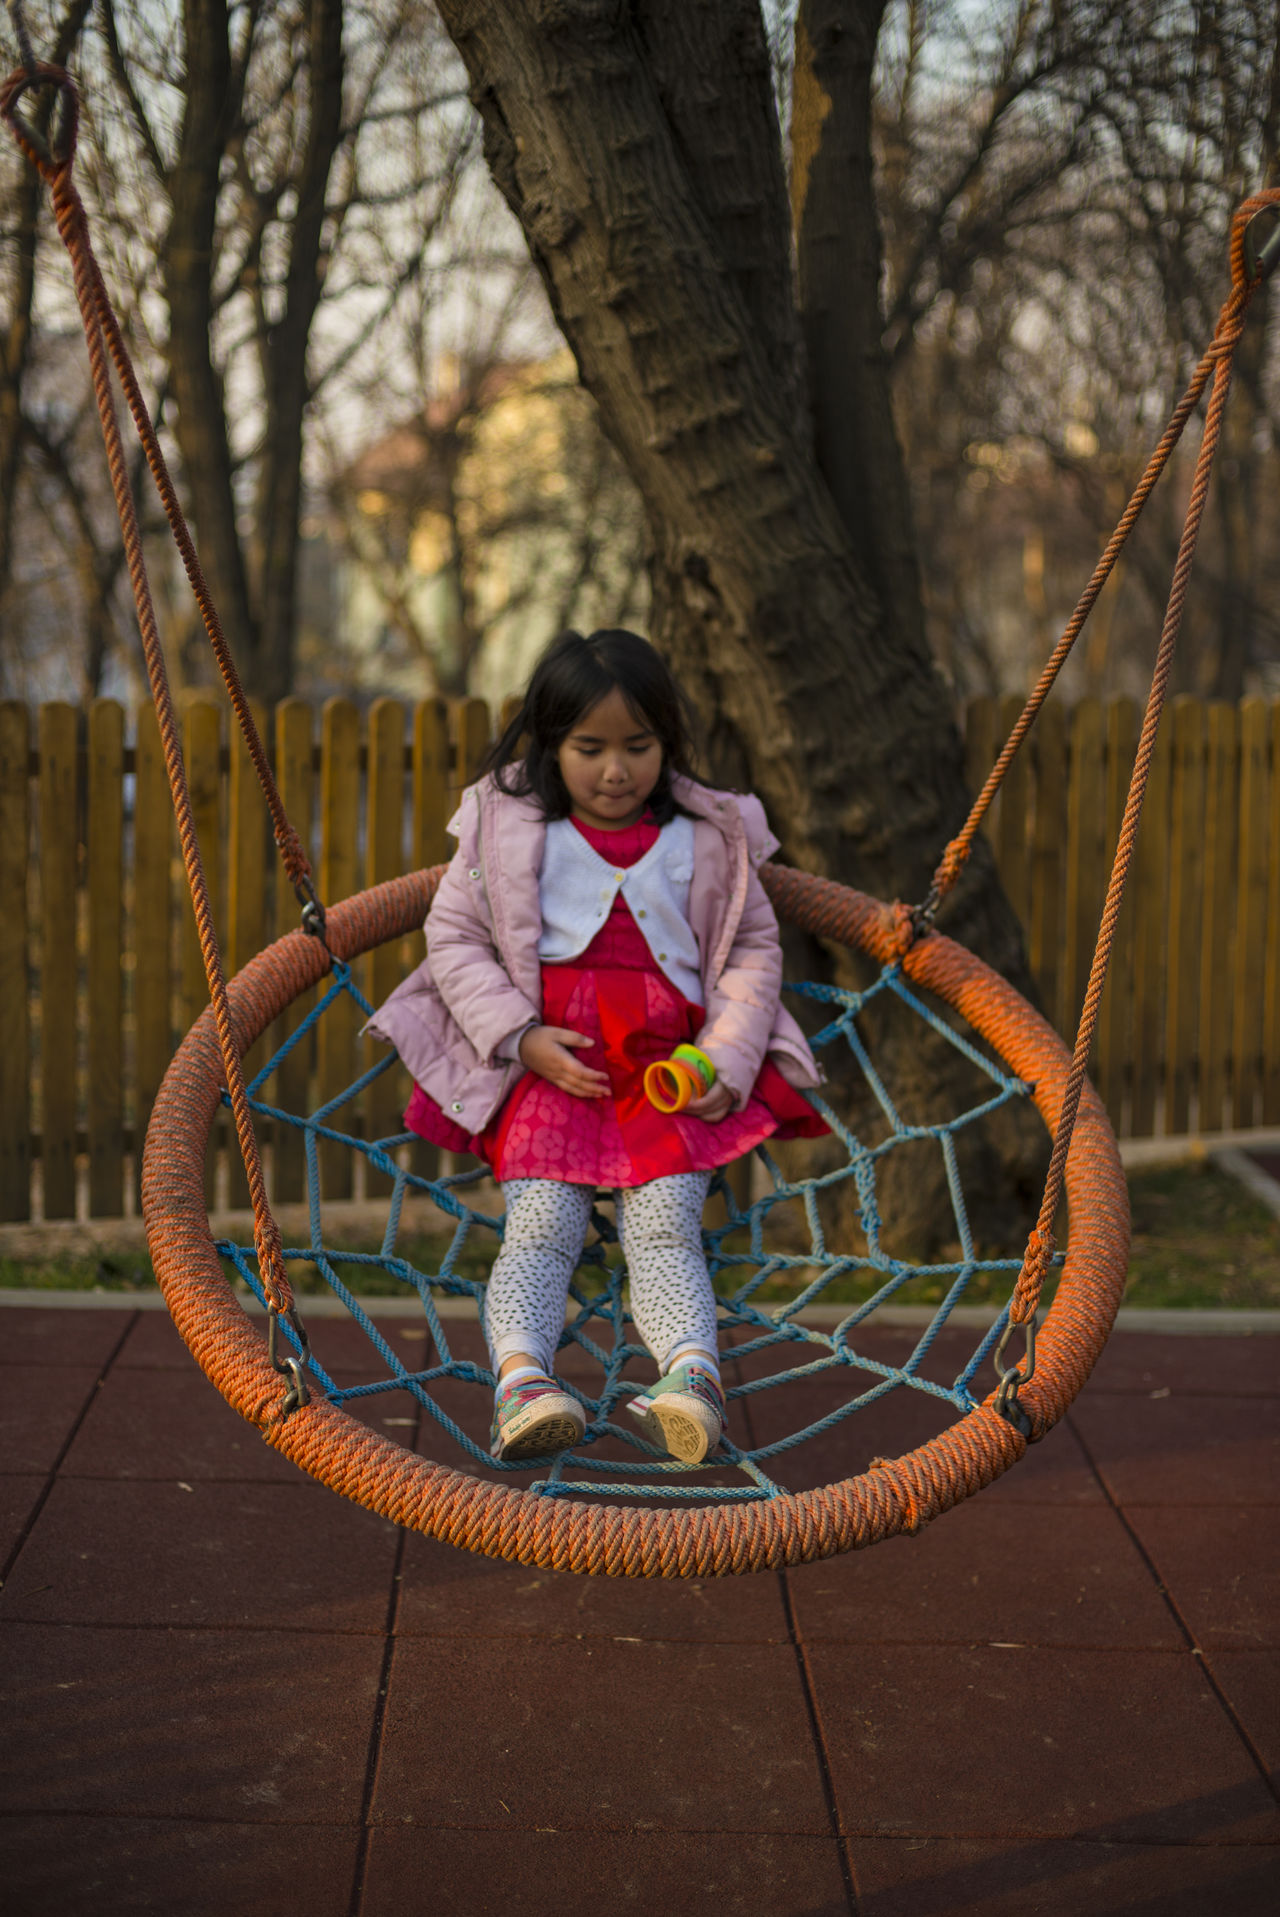 Child Childhood Children Only Day Full Length Jungle Gym One Girl Only One Person Outdoors Park People Playground Playground Equipment Playground Fun With The Kids Playgrounds Racket Sport Swing Tree The Portraitist - 2017 EyeEm Awards